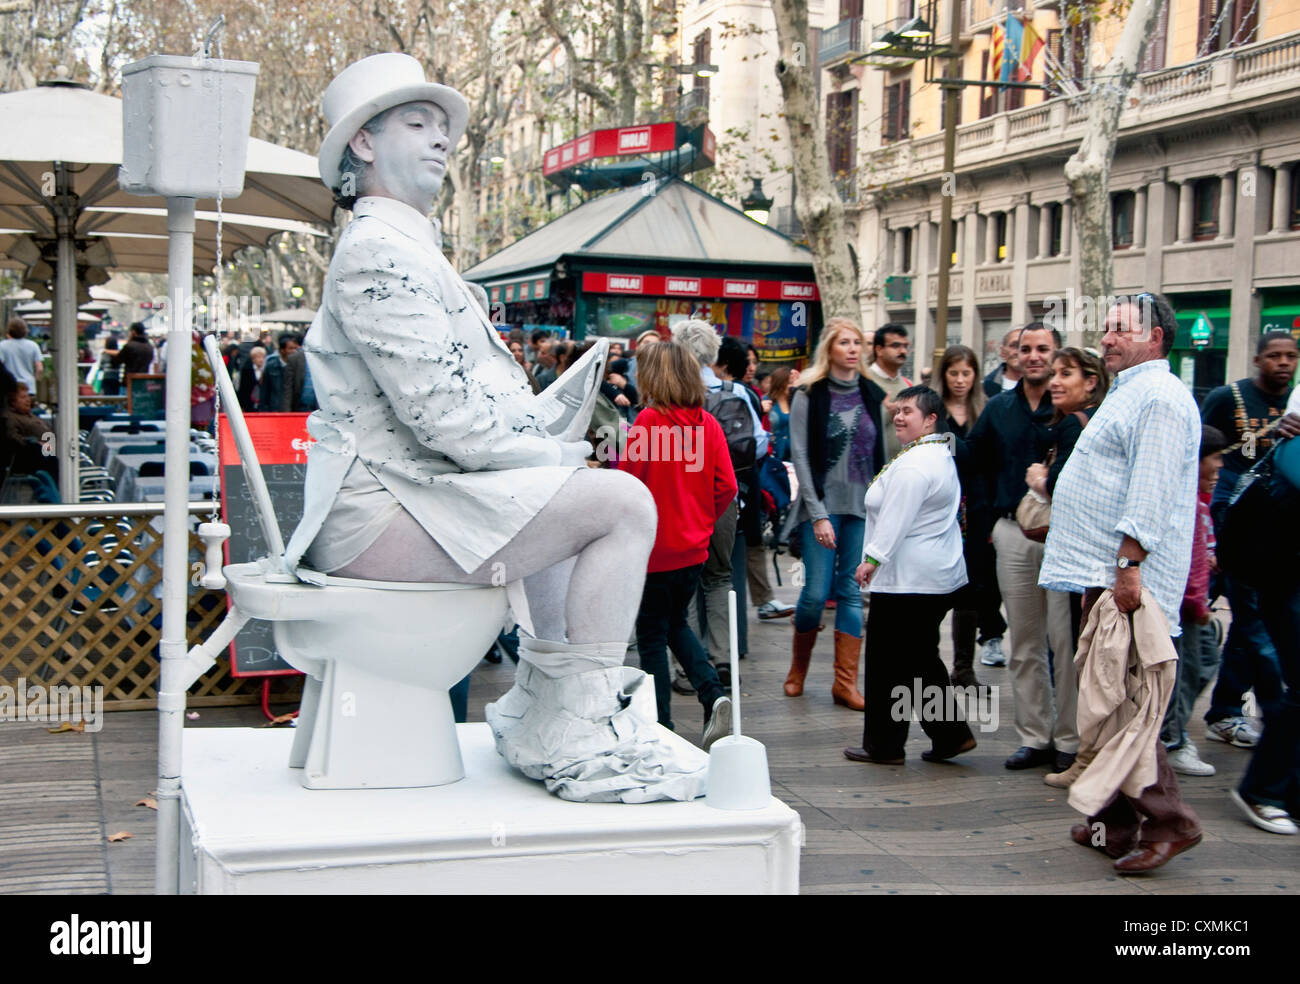 Mime on Las Ramblas in Barcelona sitting on toilet reading newspaper - Stock Image